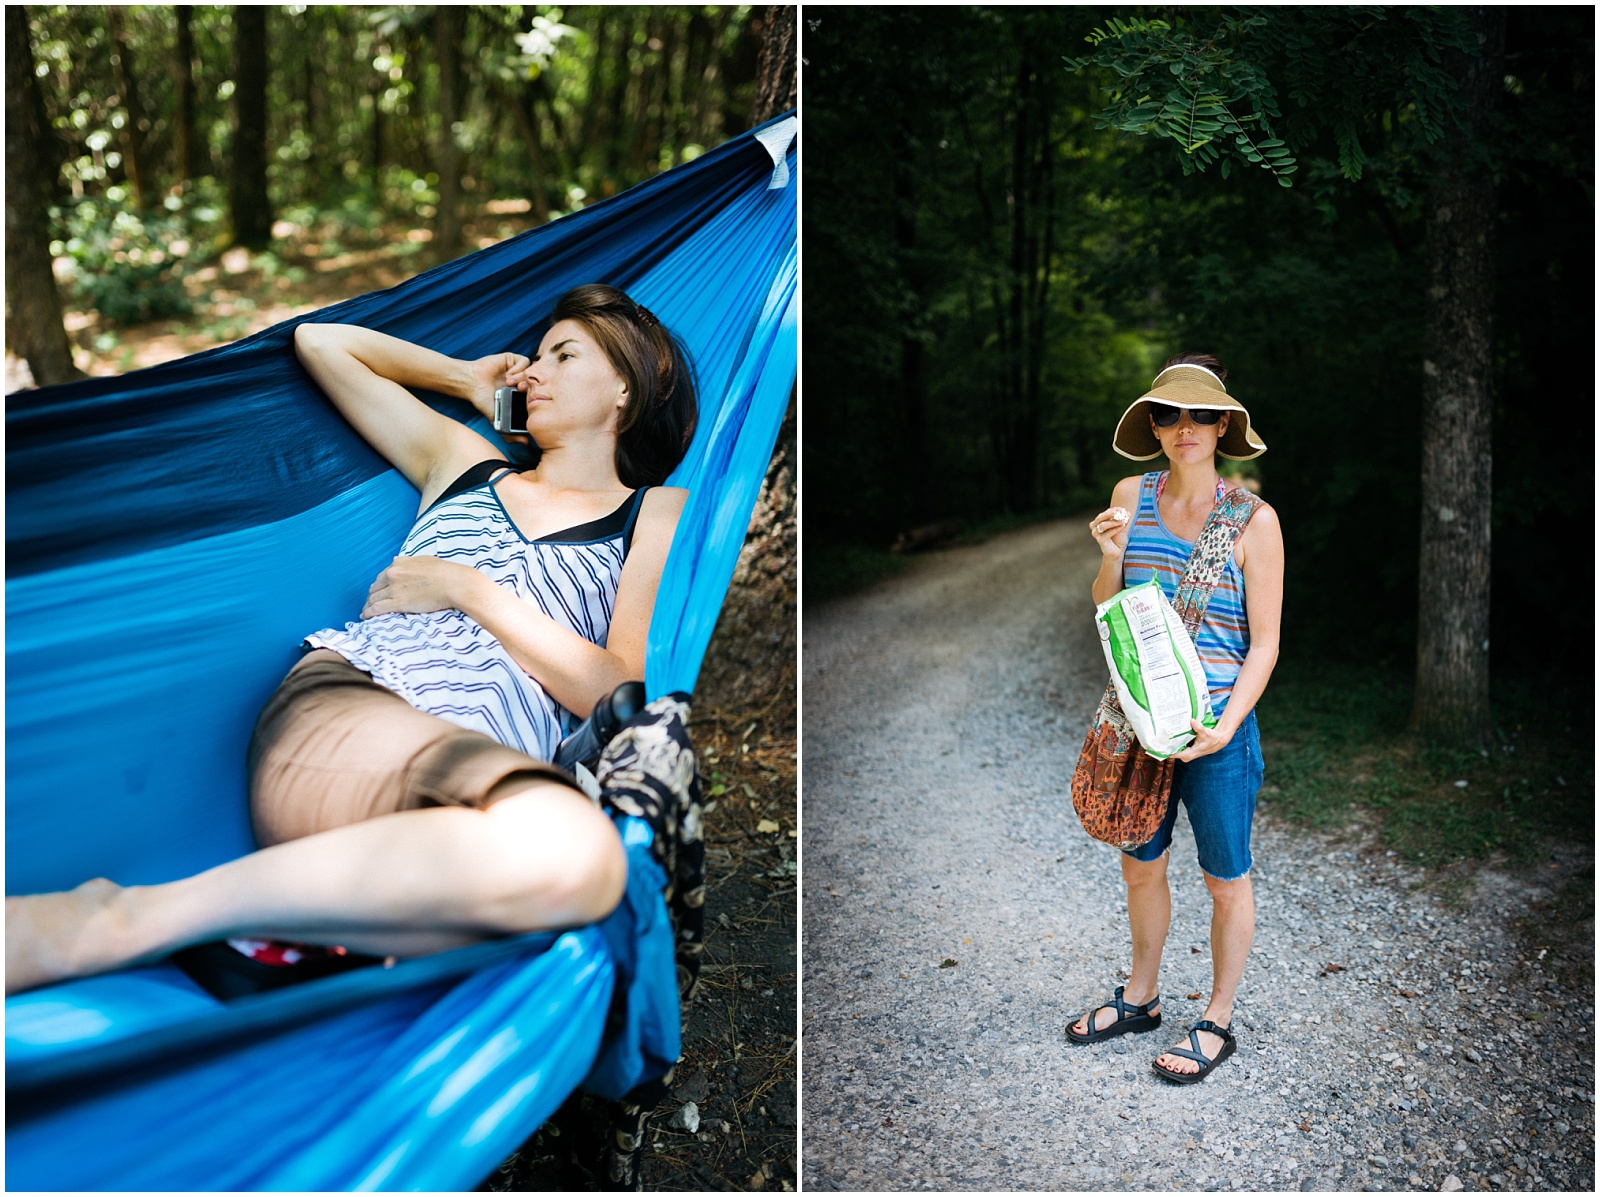 Candid camping pictures